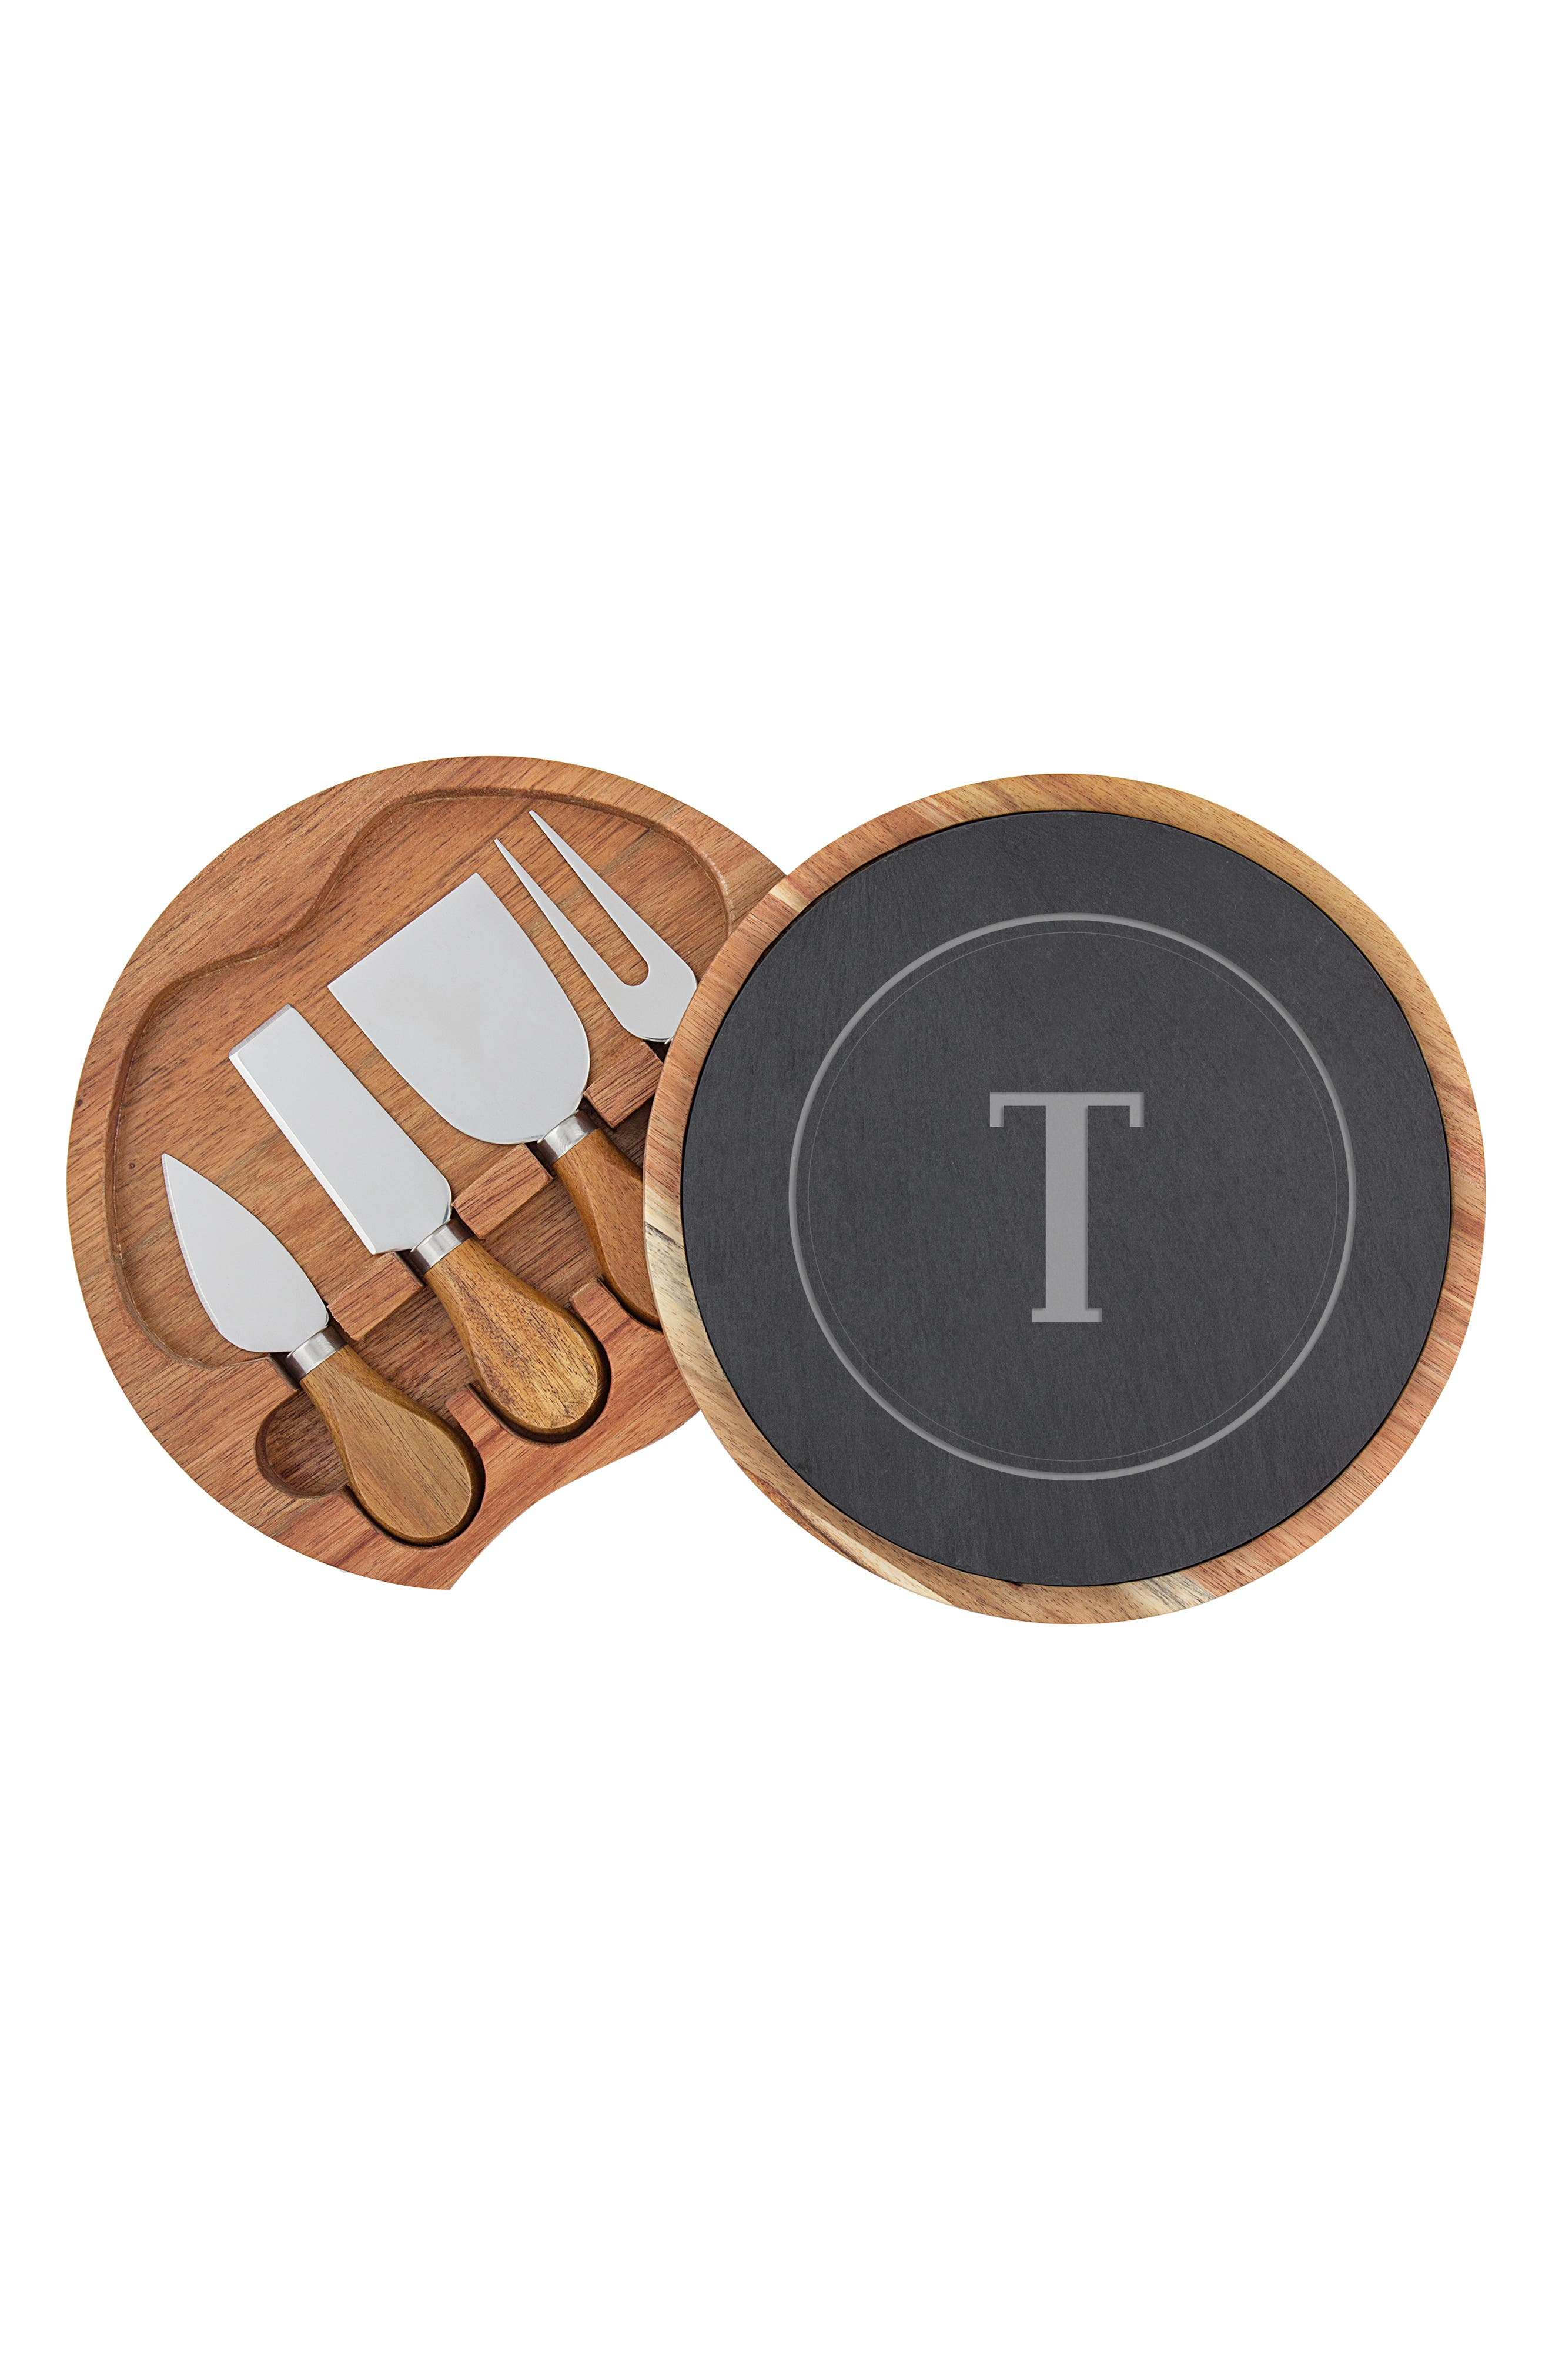 Monogram 5-Piece Cheese Board & Utensil Set,                             Alternate thumbnail 2, color,                             BROWN